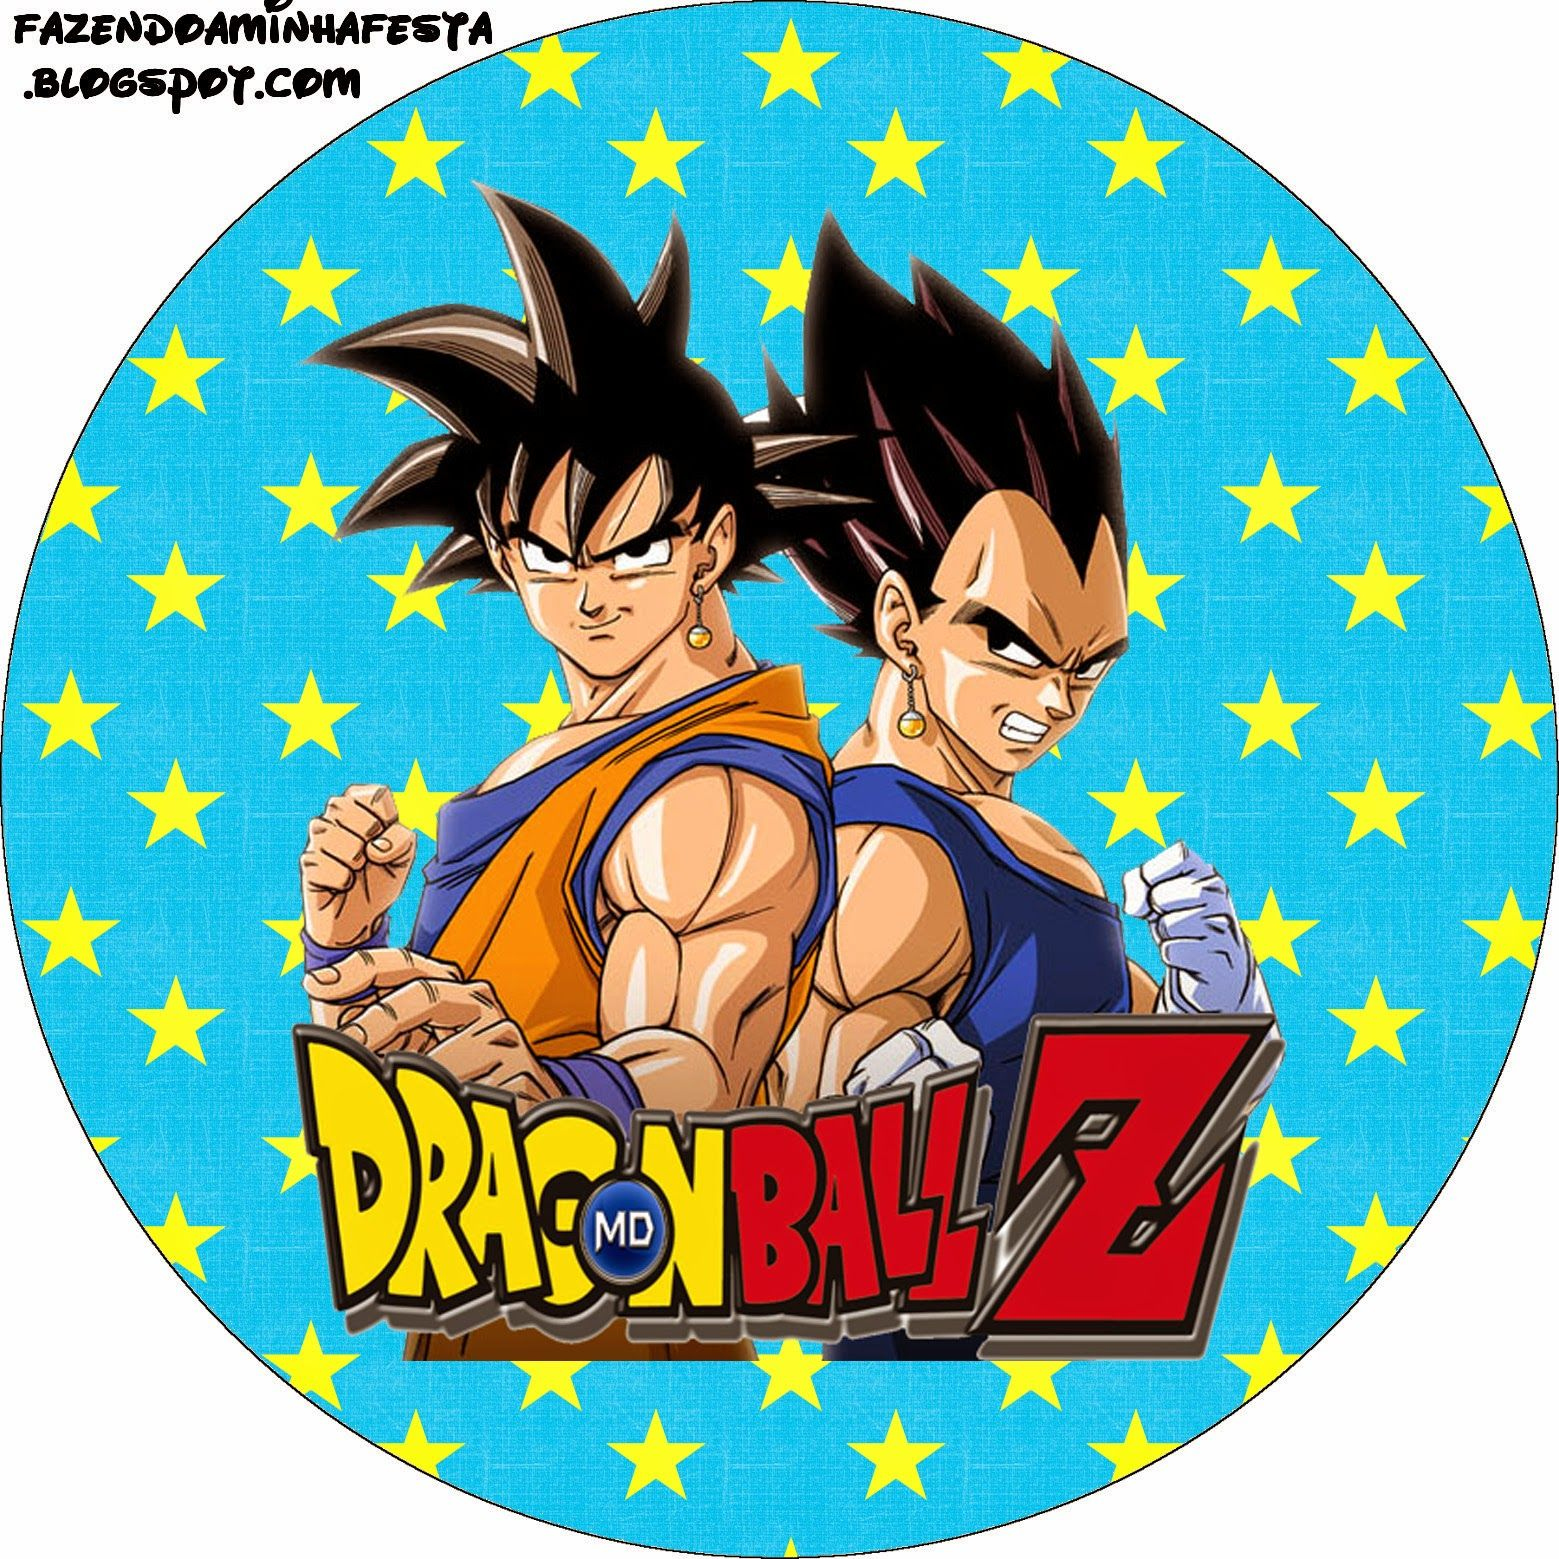 Pin by Saory San on Dragn Ball party Pinterest Dragon ball